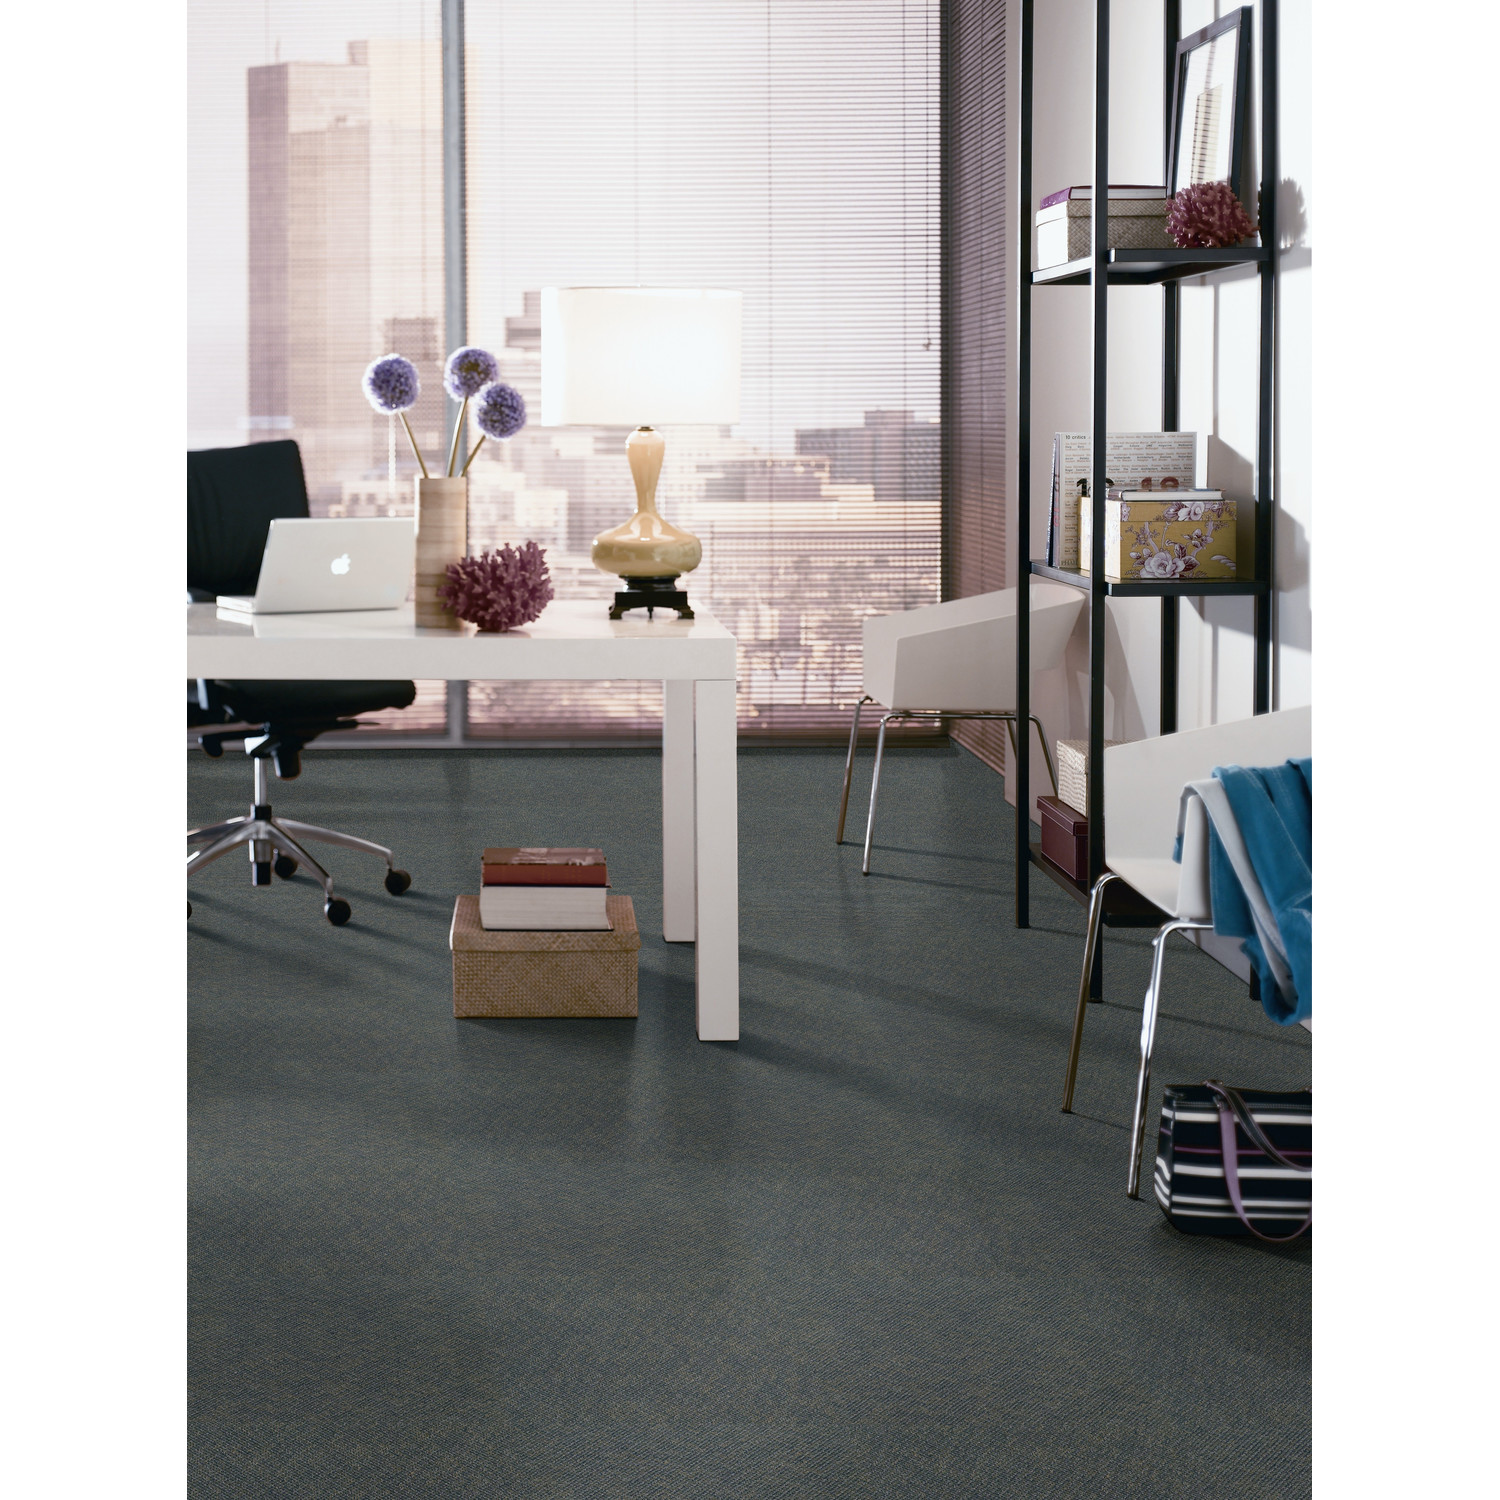 Aladdin Voltage Carpet Tile in Oceanic by Mohawk Flooring matched with white wall plus white wooden desk for home office decor ideas